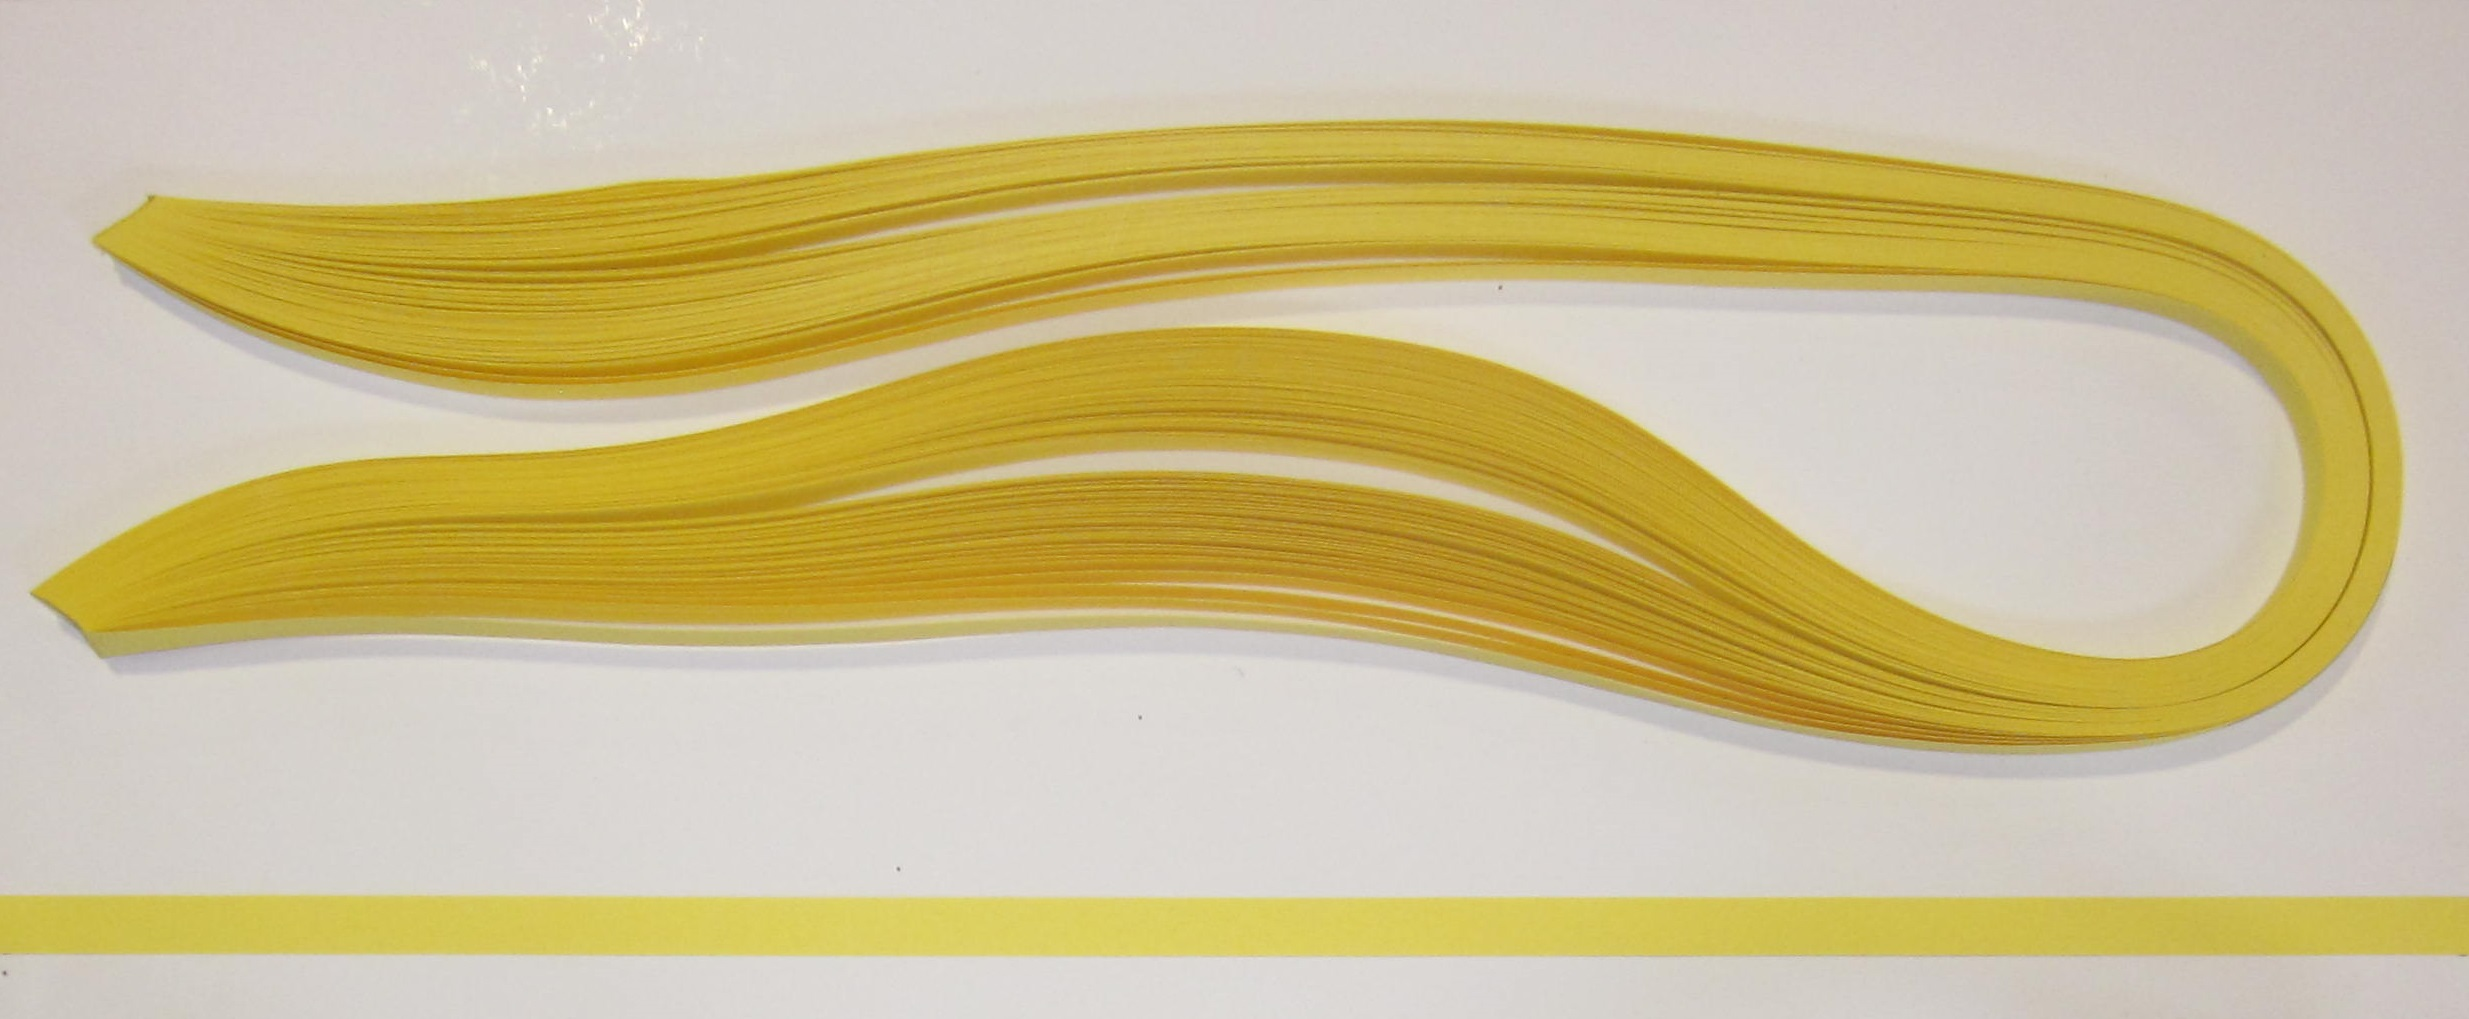 PAPEL QUILLING 315, 3MM. AMARILLO ORO